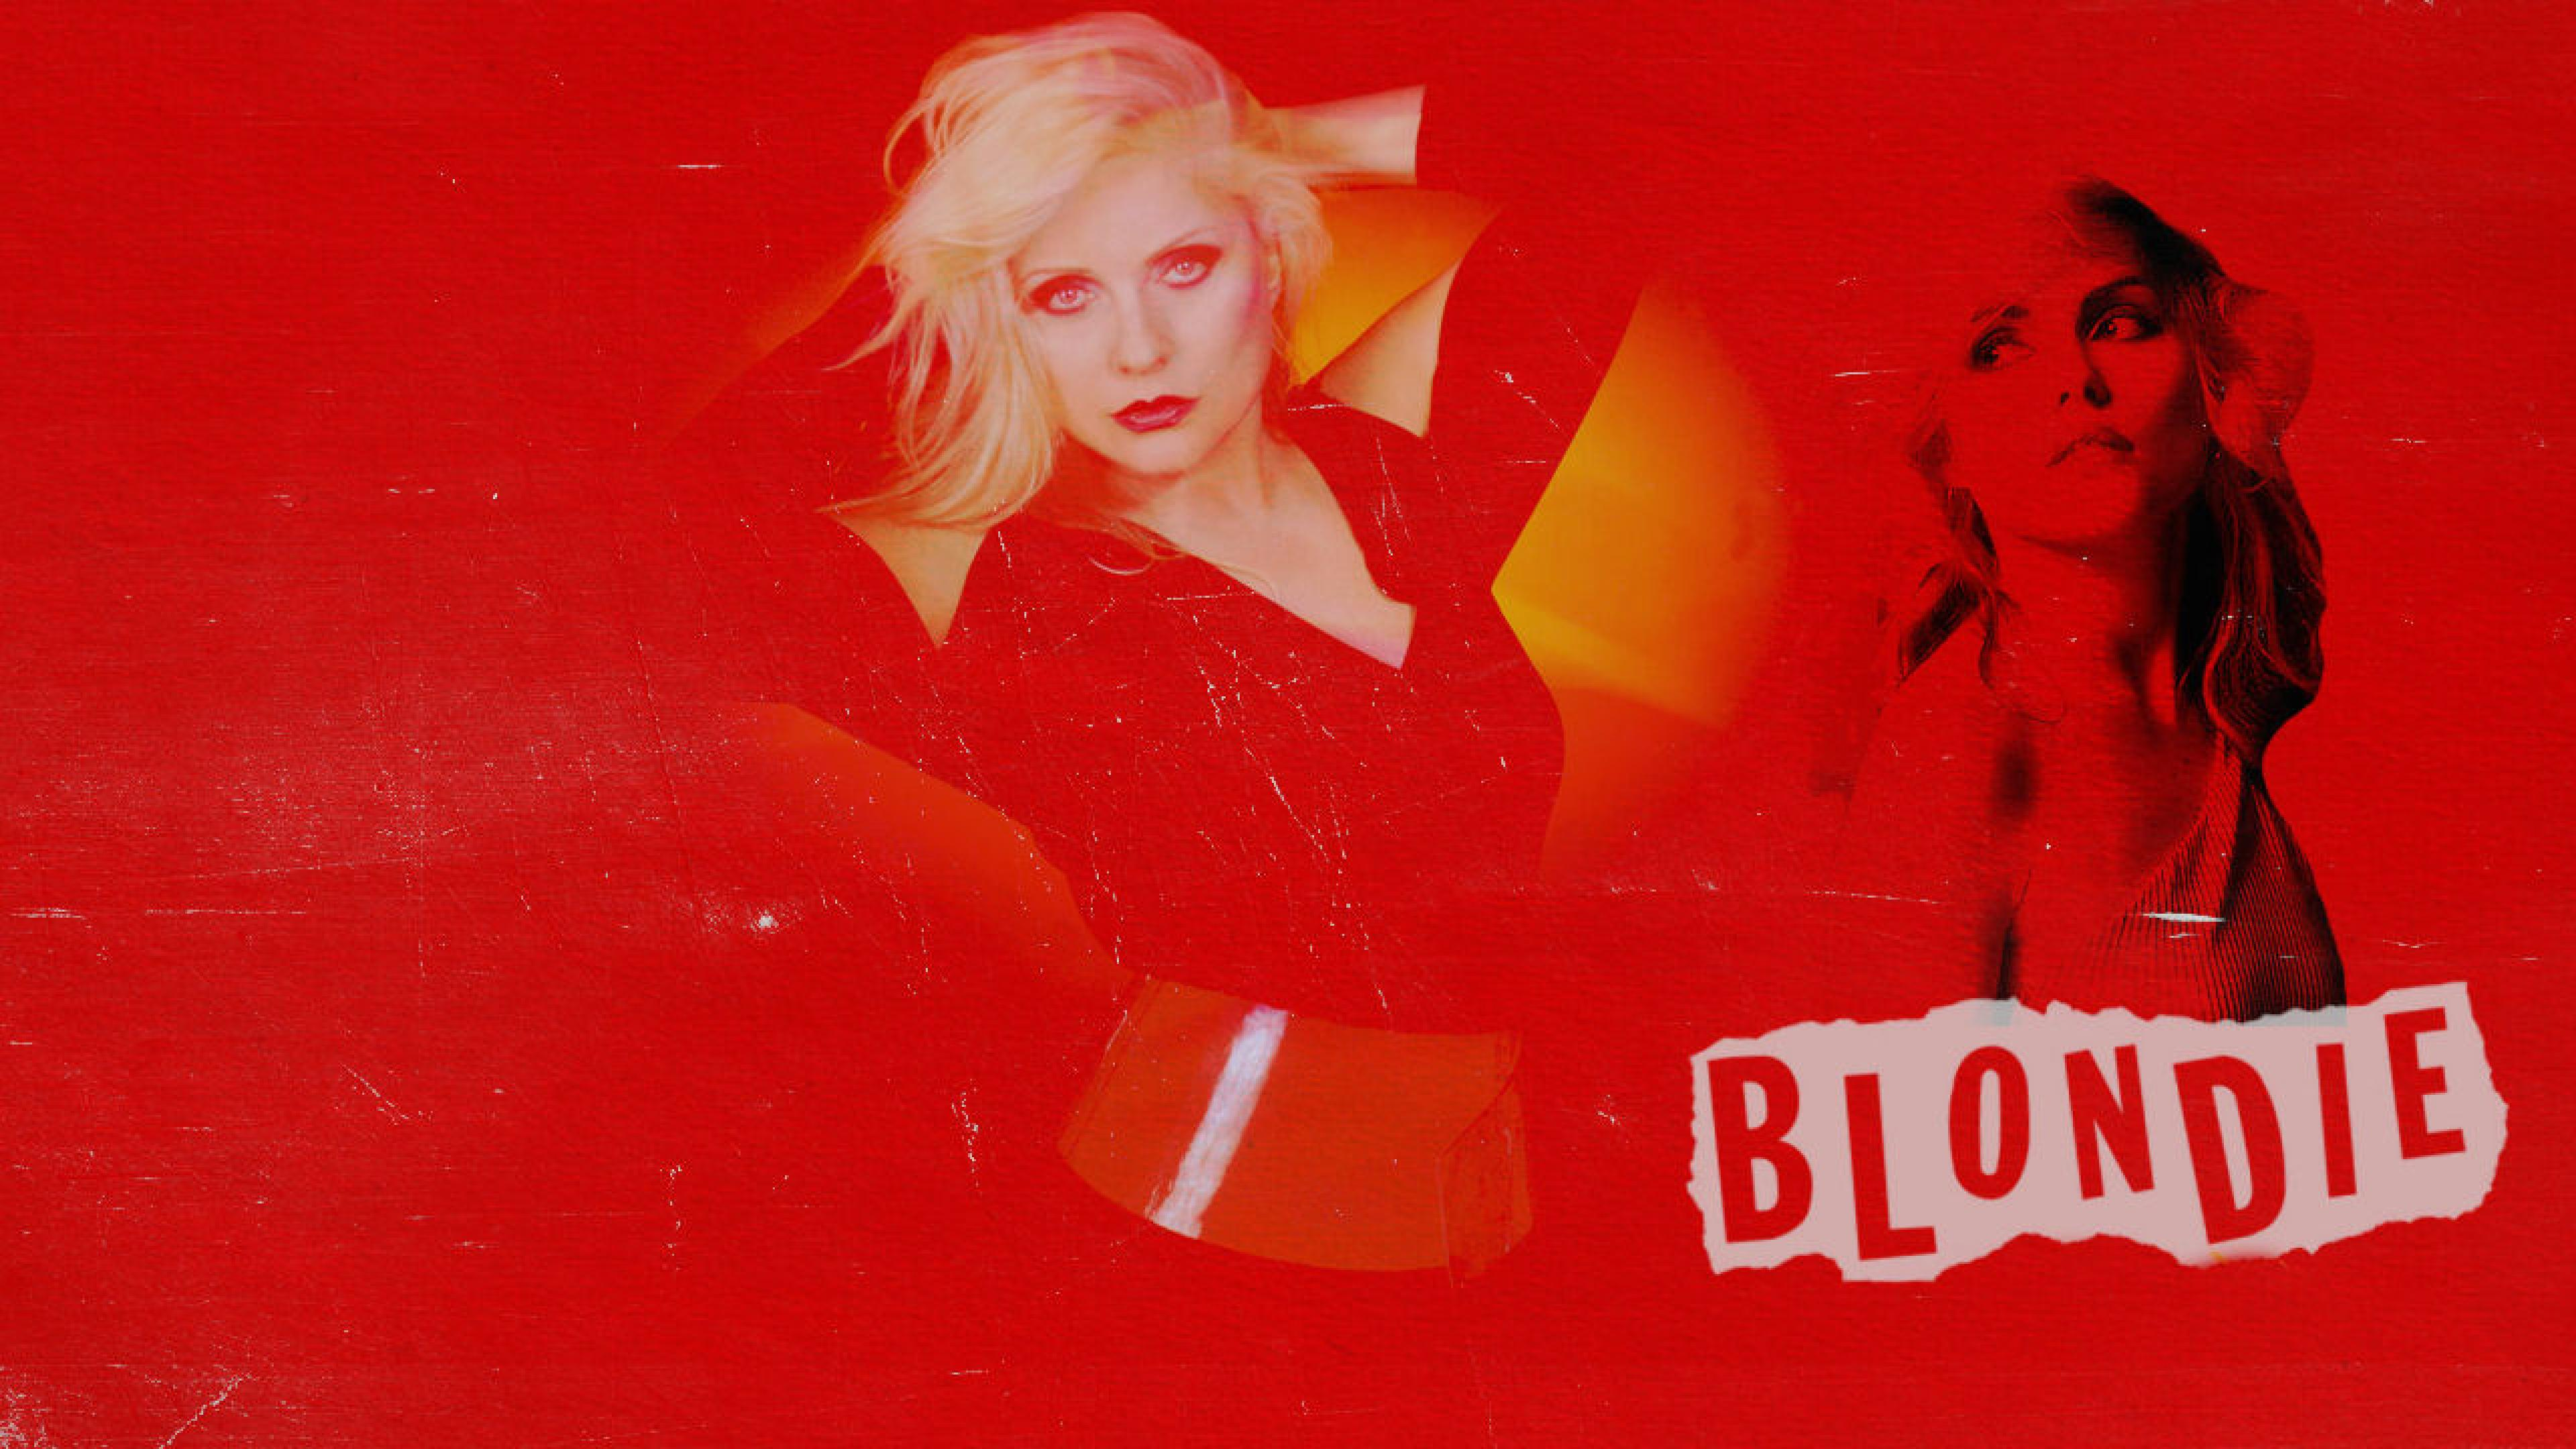 blondie wallpaper wallpapersafari